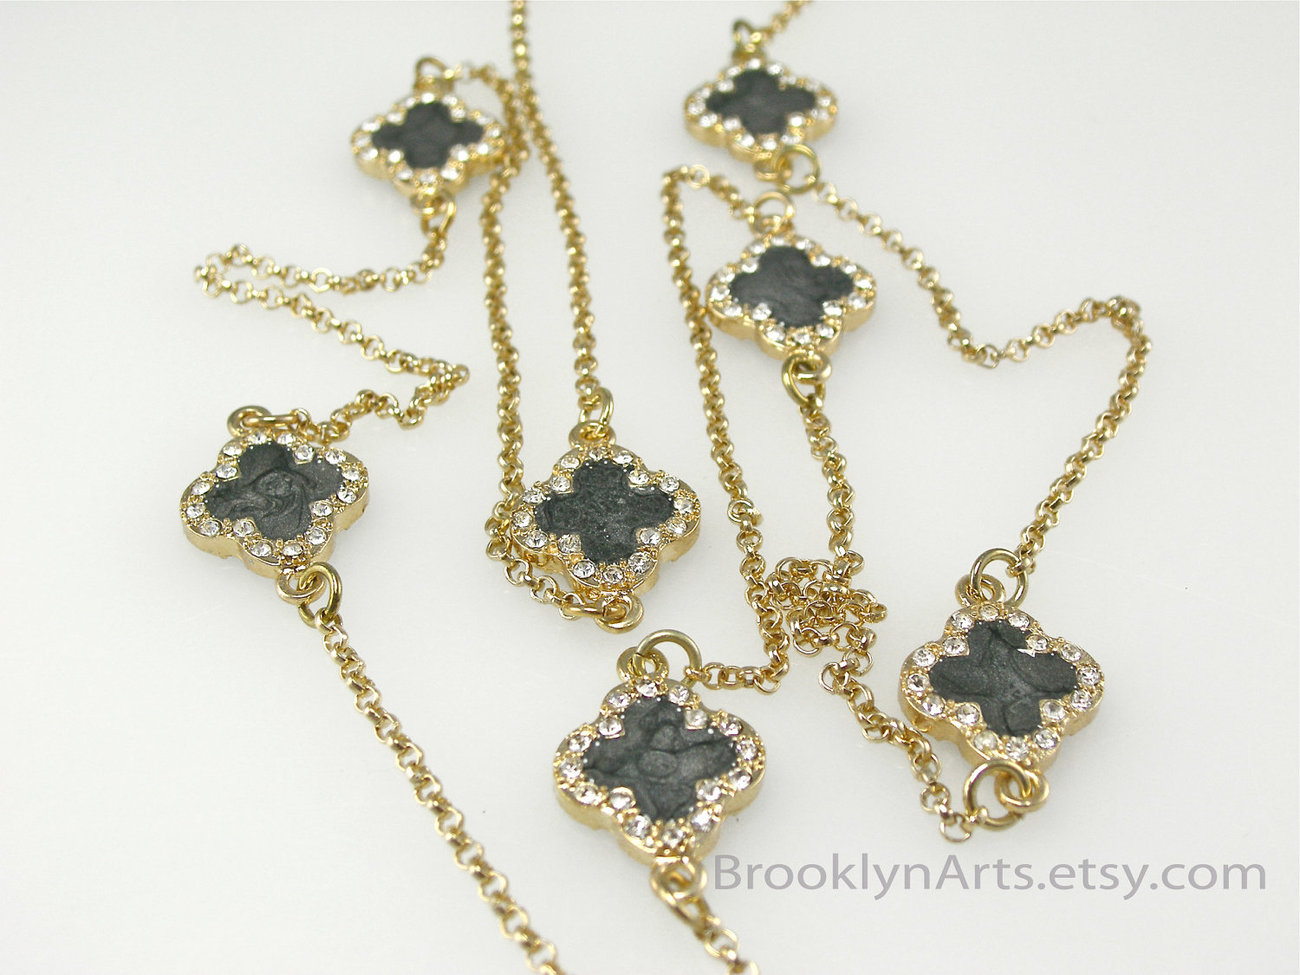 Clover Leaf Necklace Black - Sarah - This Week Only FREE Earrings